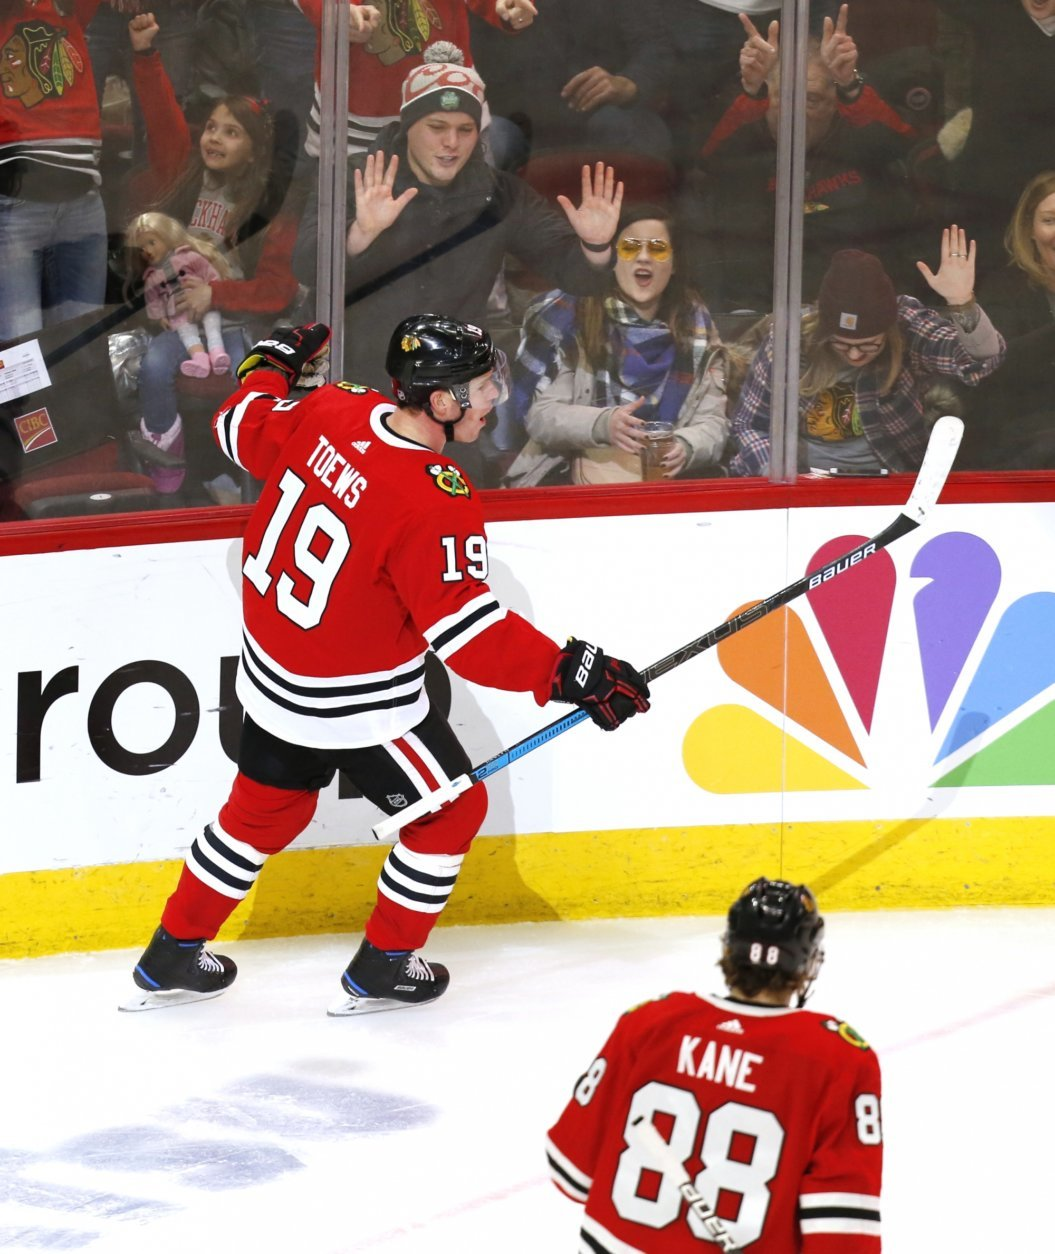 Chicago Blackhawks center Jonathan Toews (19) celebrates after his goal against the Washington Capitals during the third period of an NHL hockey game Sunday, Jan. 20, 2019, in Chicago. (AP Photo Nuccio DiNuzzo)